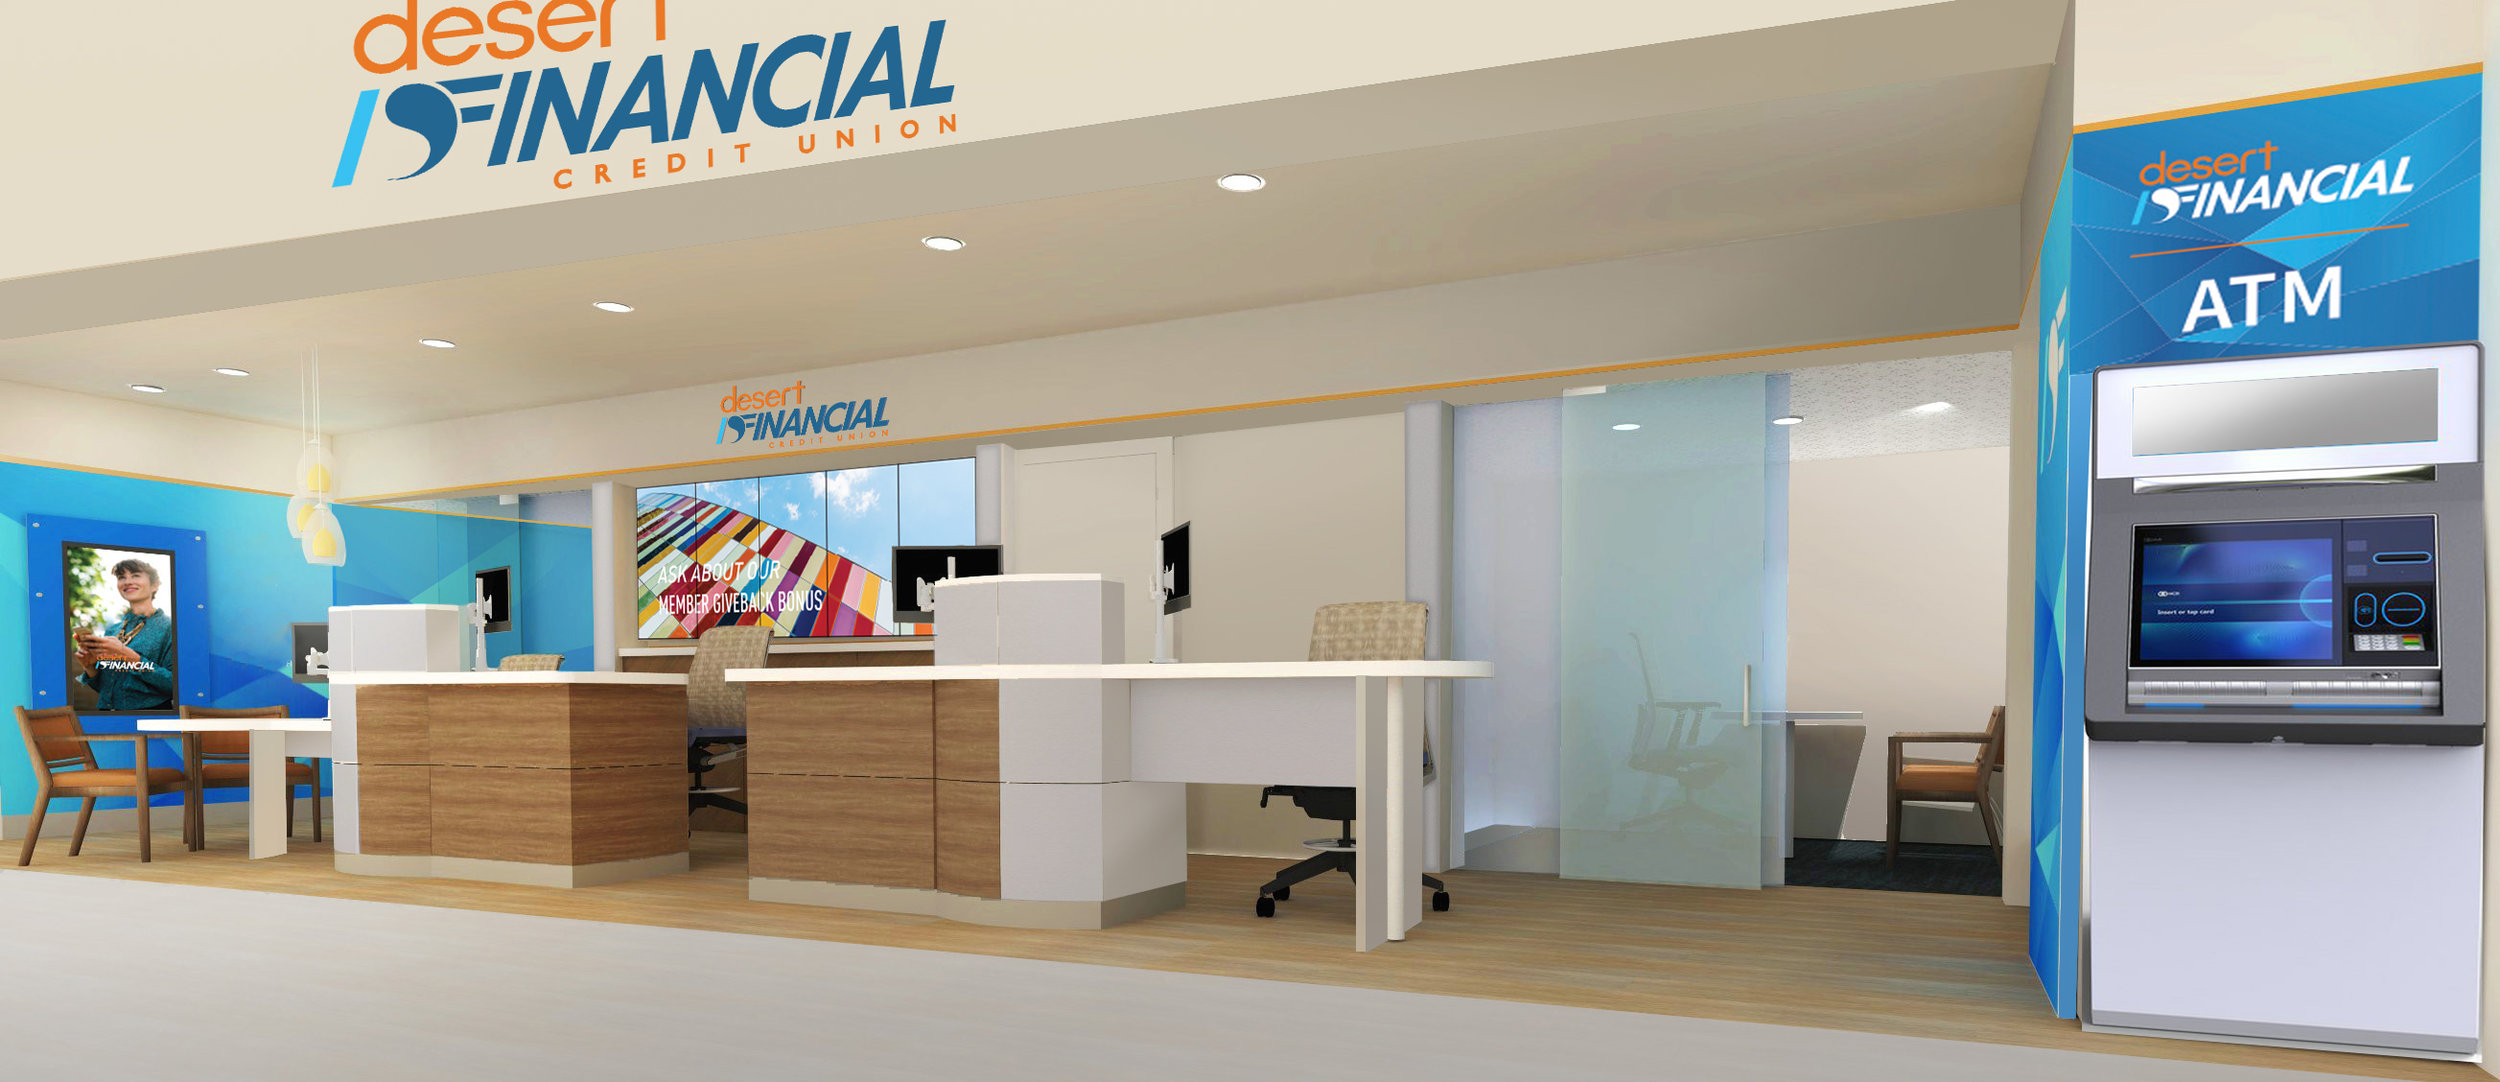 Desert Financial Credit Union Final Rendering by Lily Grace York